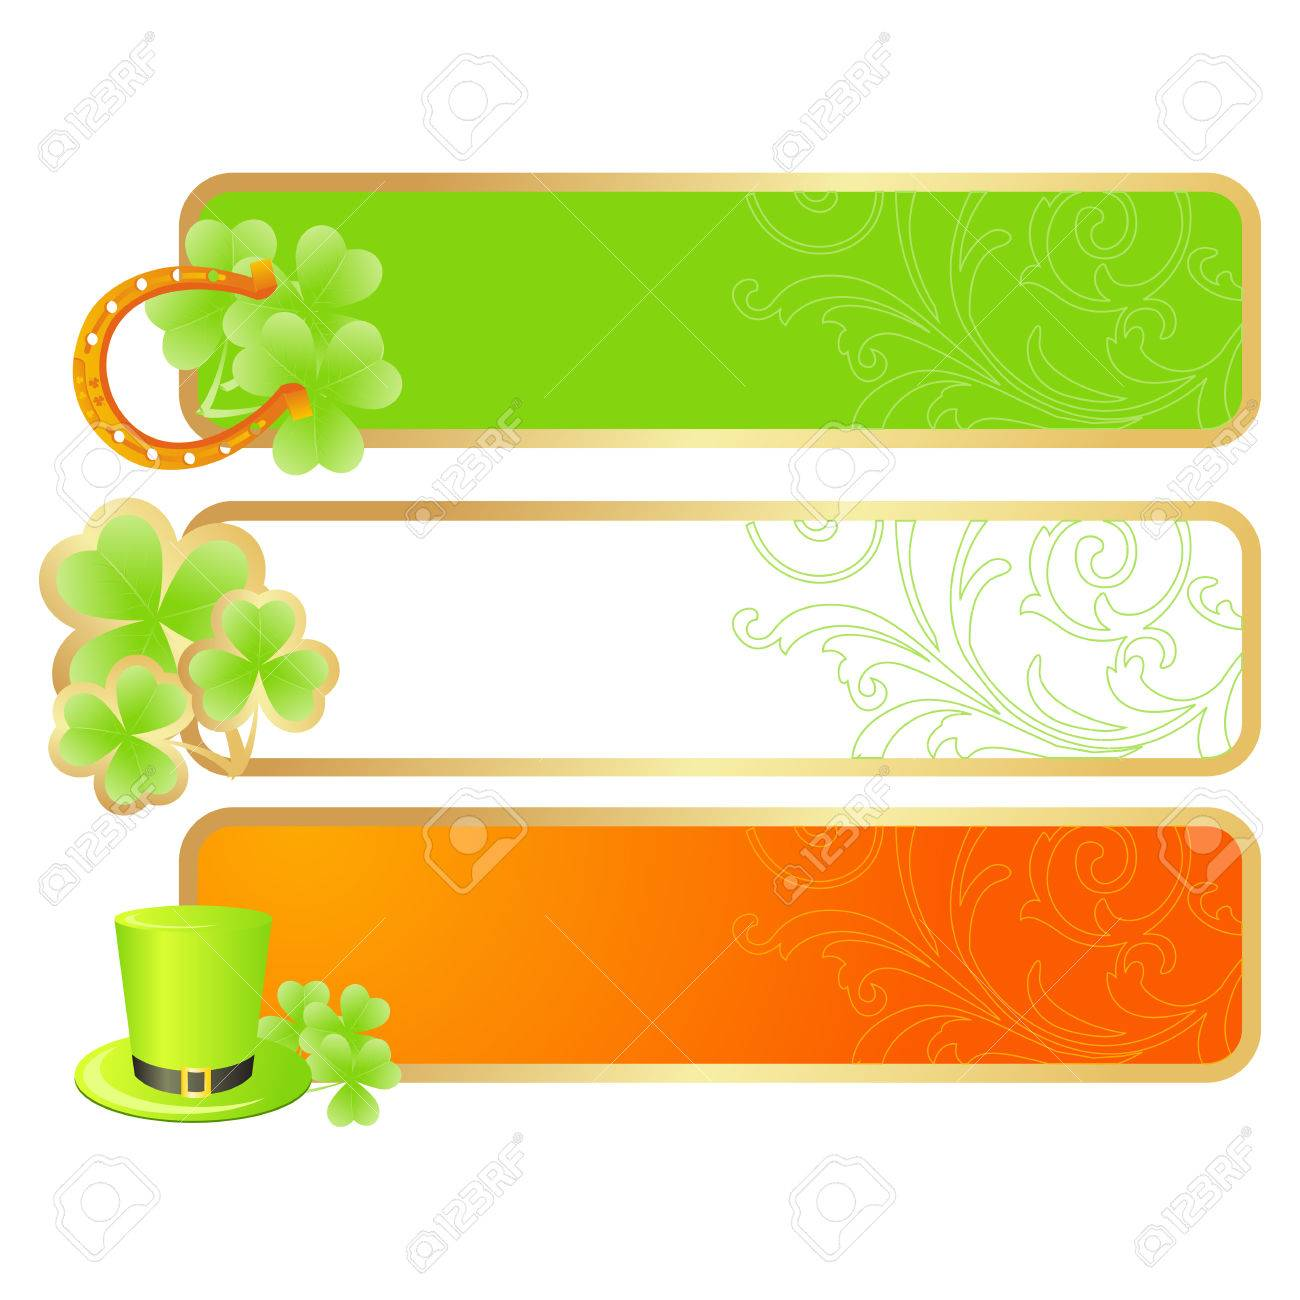 Banners for St. Patrick's day in Irish flag colors and holiday symbols - Leprechaun hat, pot of gold and horseshoe Stock Vector - 6175986